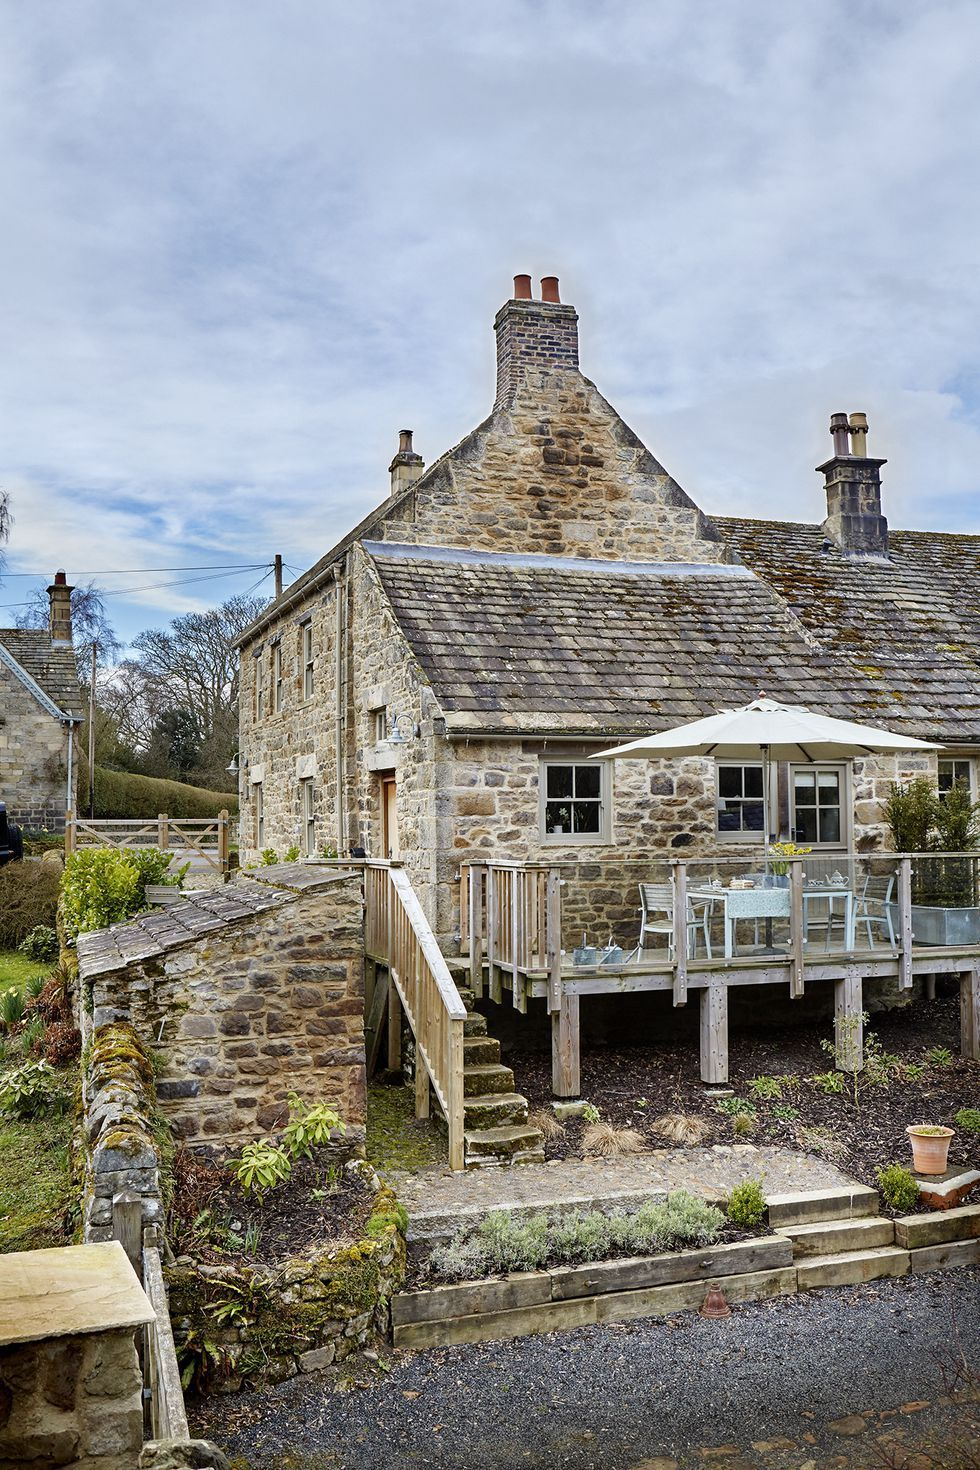 There S Charm Galore In This English Stone Cottage Linda Merrill Rustic Houses Exterior Stone Cottages Country Cottage Decor